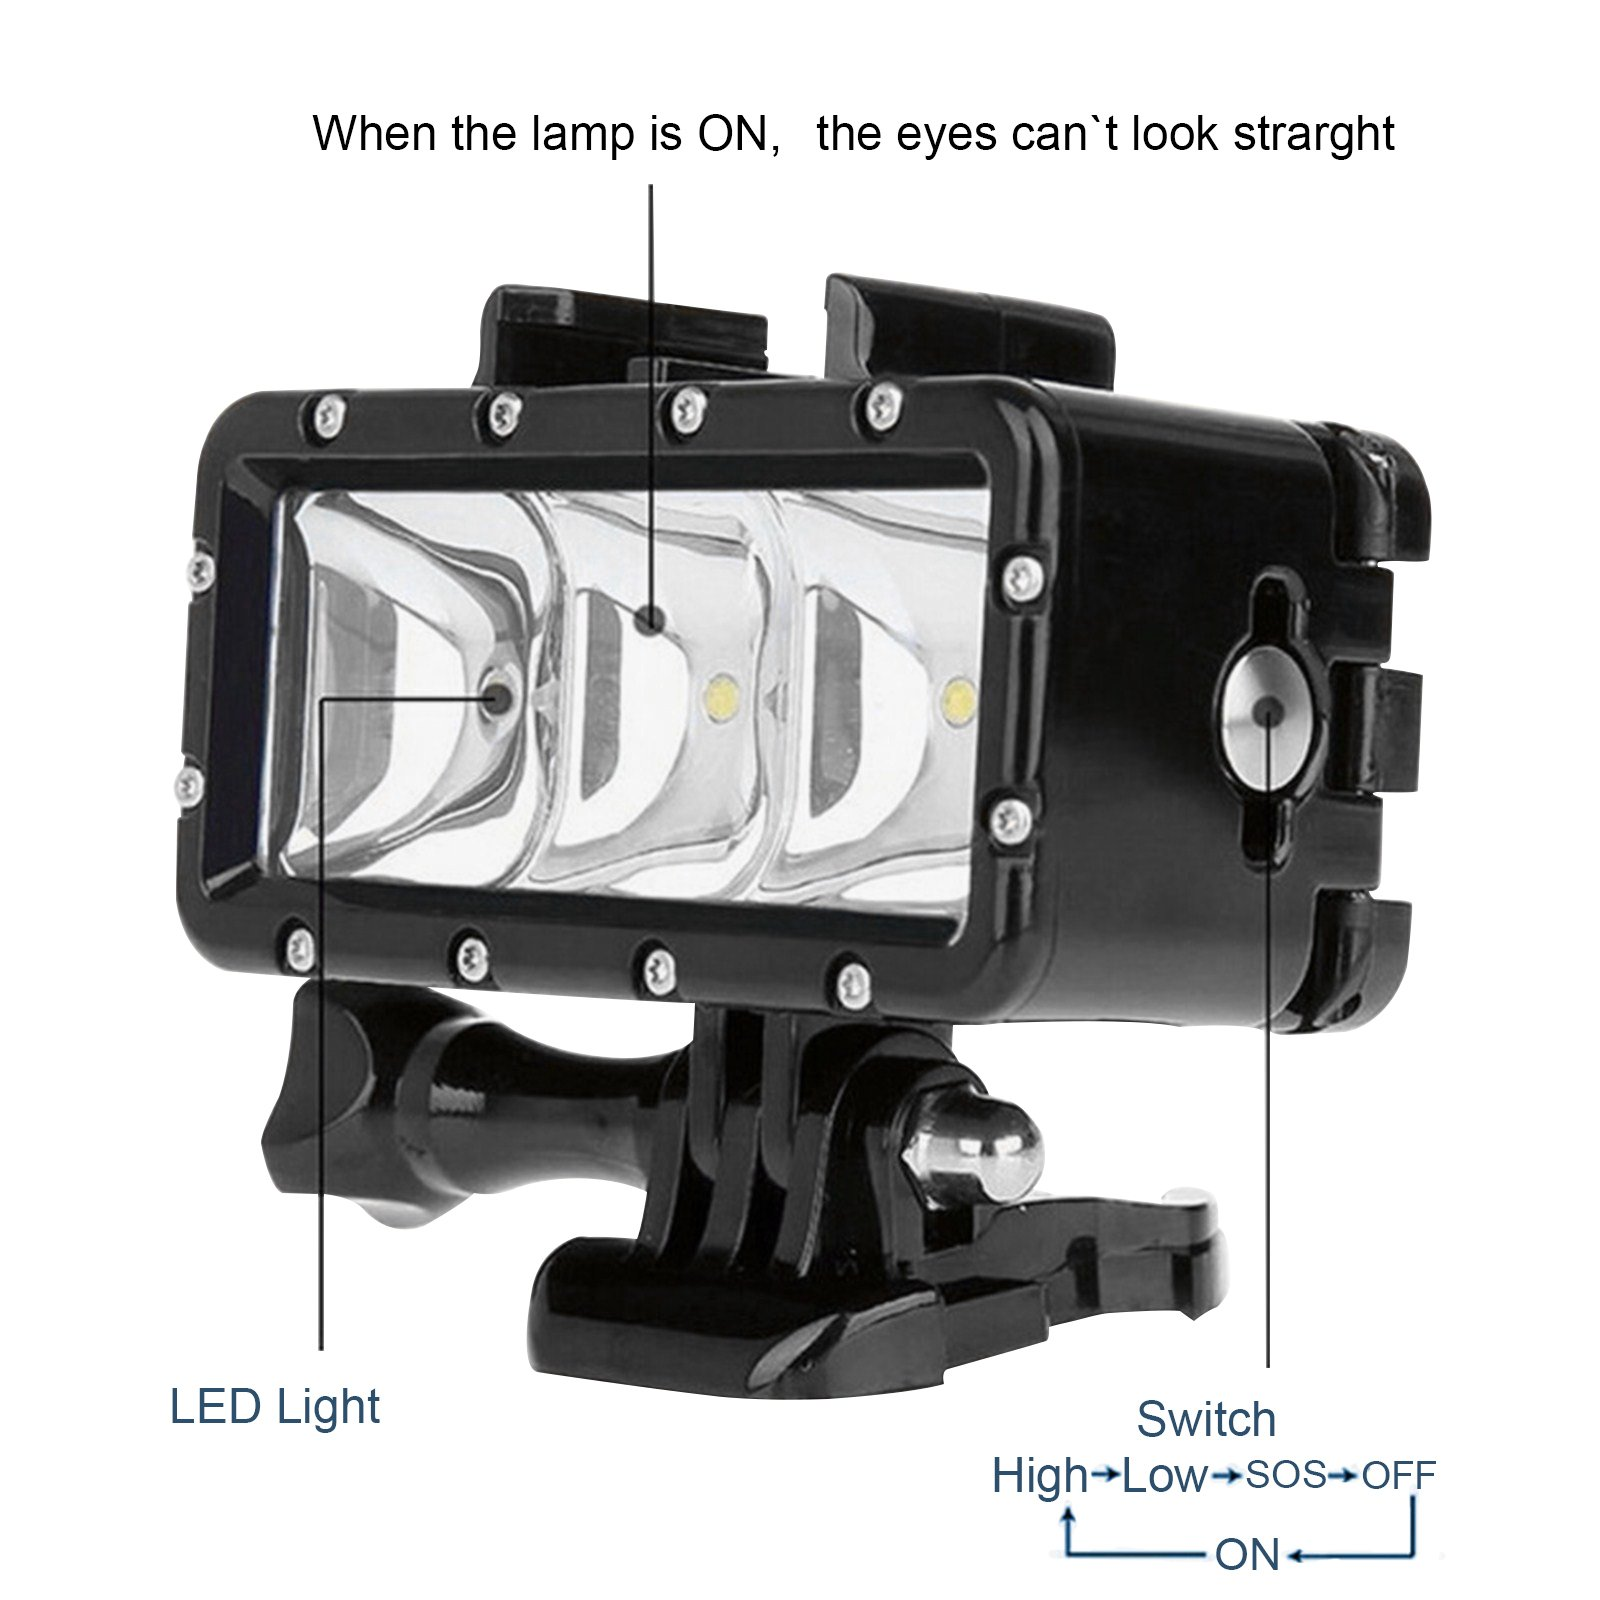 SHOOT Waterproof 30m Diving Light High Power Dimmable LED Underwater Fill Light for GoPro Hero 6/5/5S/4/4S/3+,Campark AKASO DBPOWER Crosstour SHOOT Camera with 1200mAh Built-in Rechargeable Battery by SHOOT (Image #3)